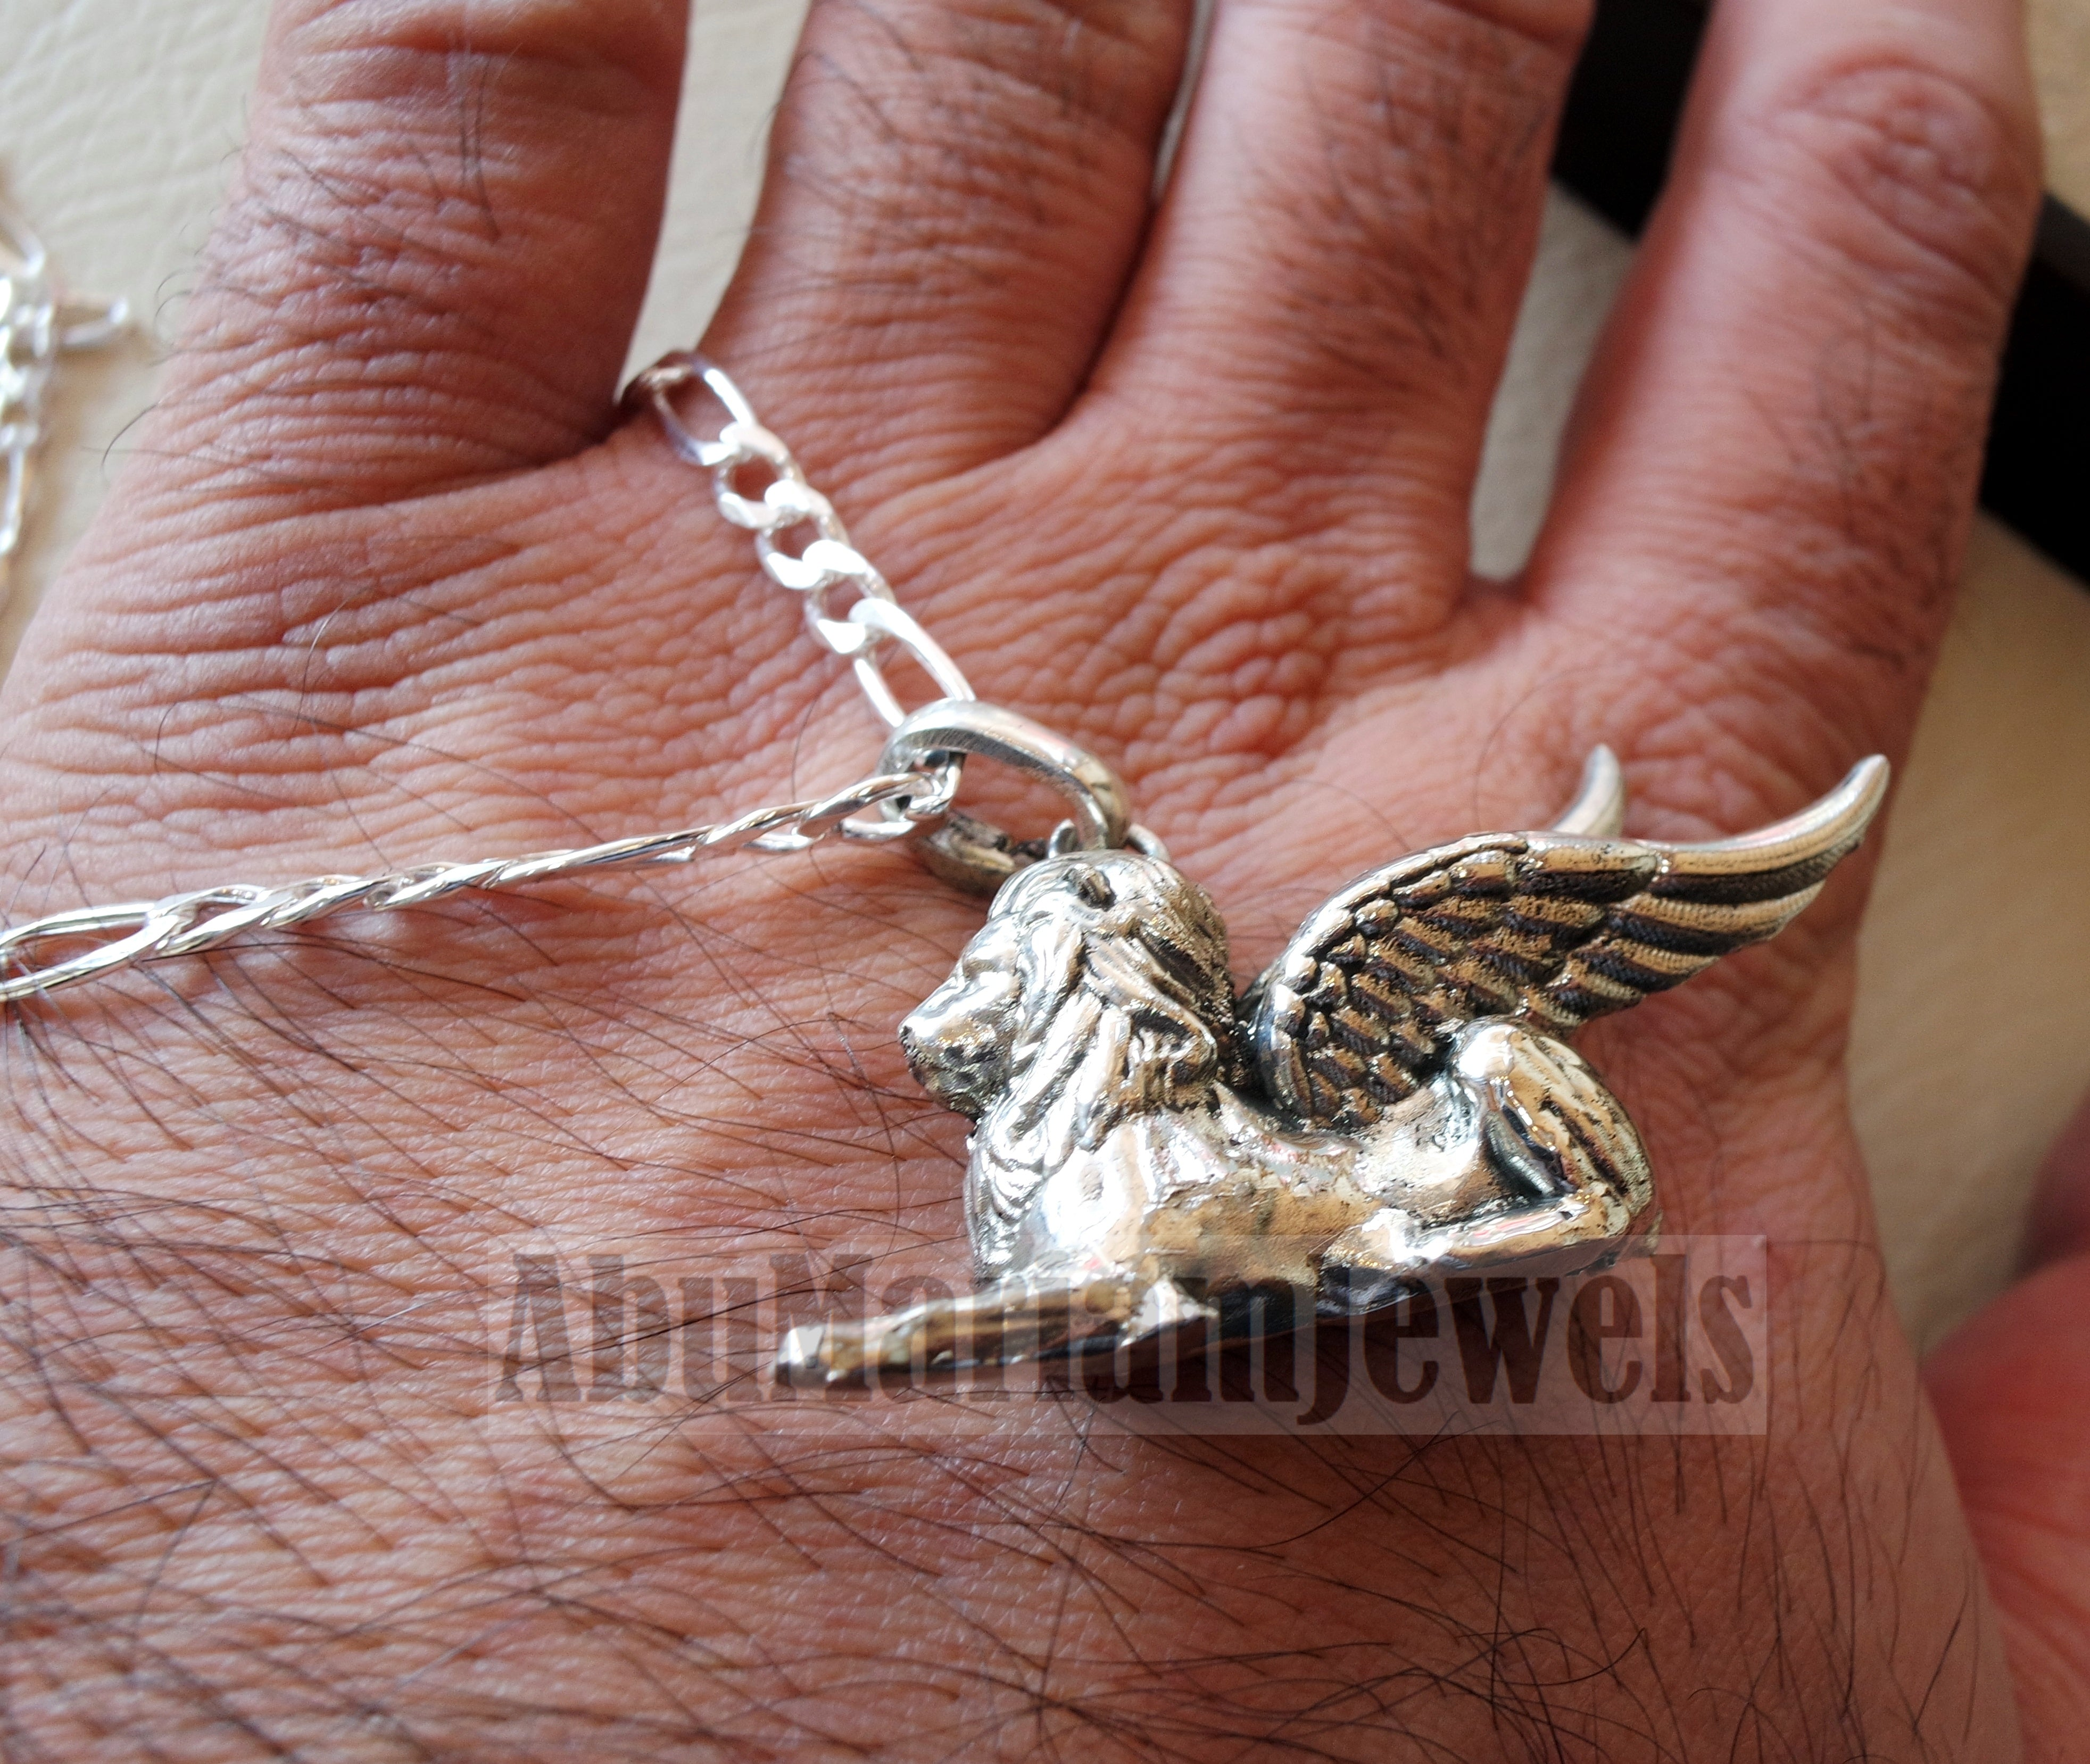 Babylon lion historical mythical winged lion the symbol of ultimate power pendant with thick chain sterling silver 925 griffin gryphon jewelry